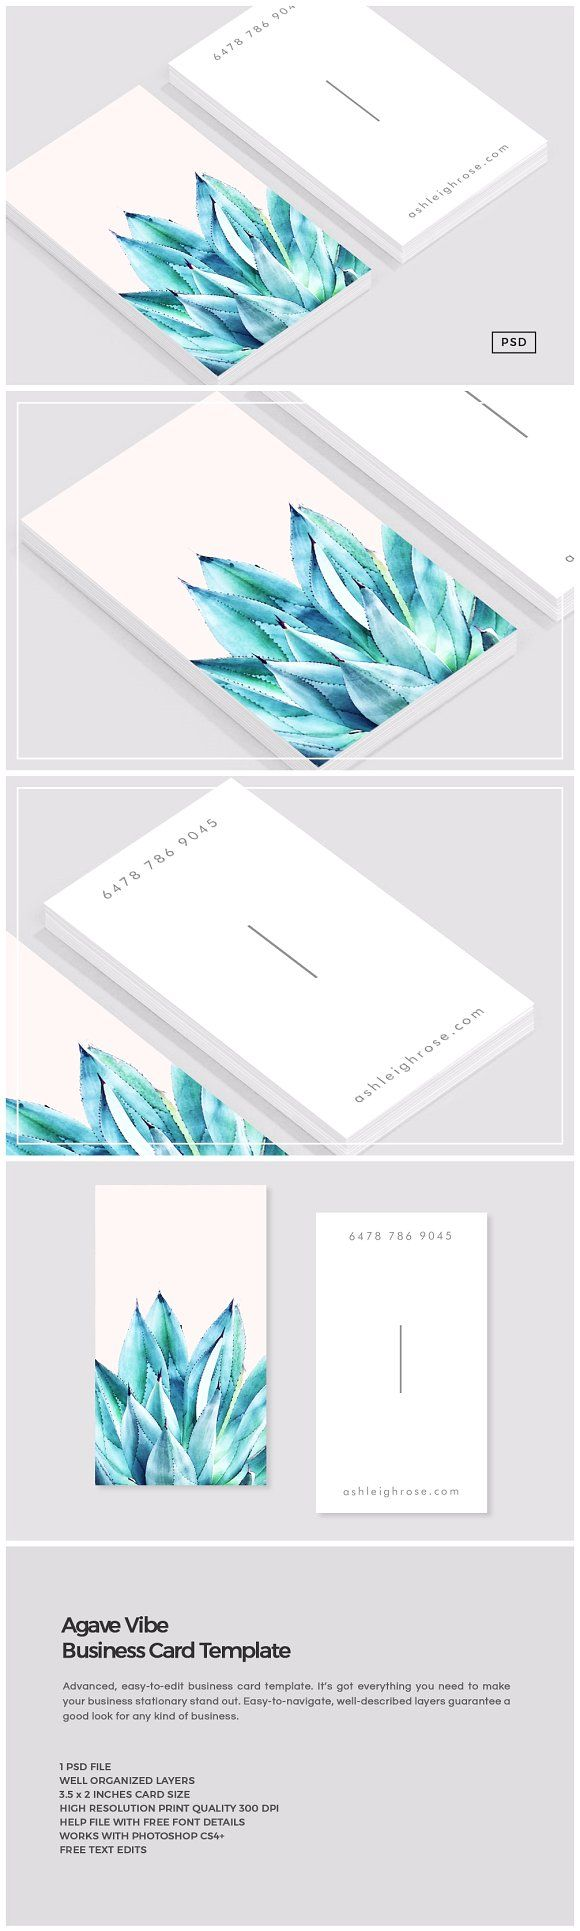 289 best business card designs images on pinterest business card agave vibe business card template templates introducing our agave vibe pastel business card template perfect for use in your next project or fo by the accmission Gallery